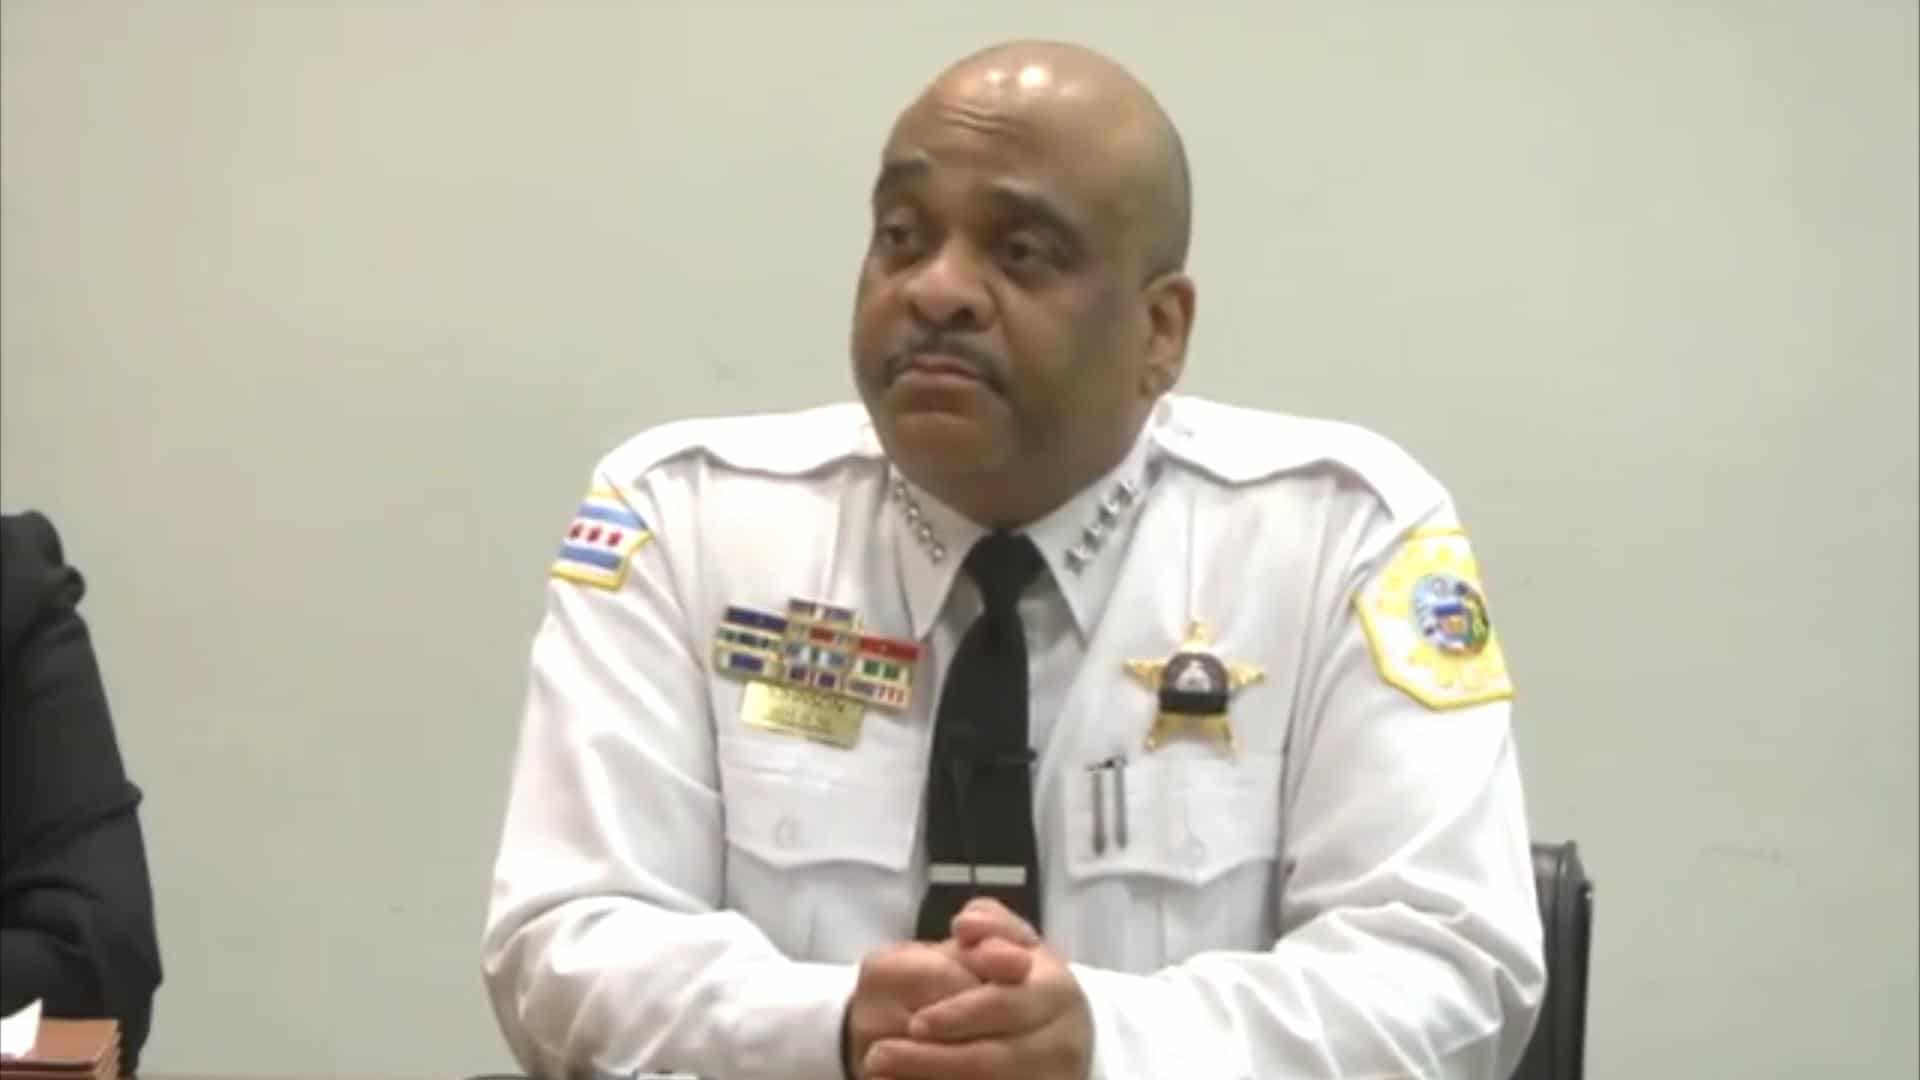 Chicago top cop under oath: 'Never heard an officer talk about code of silence'